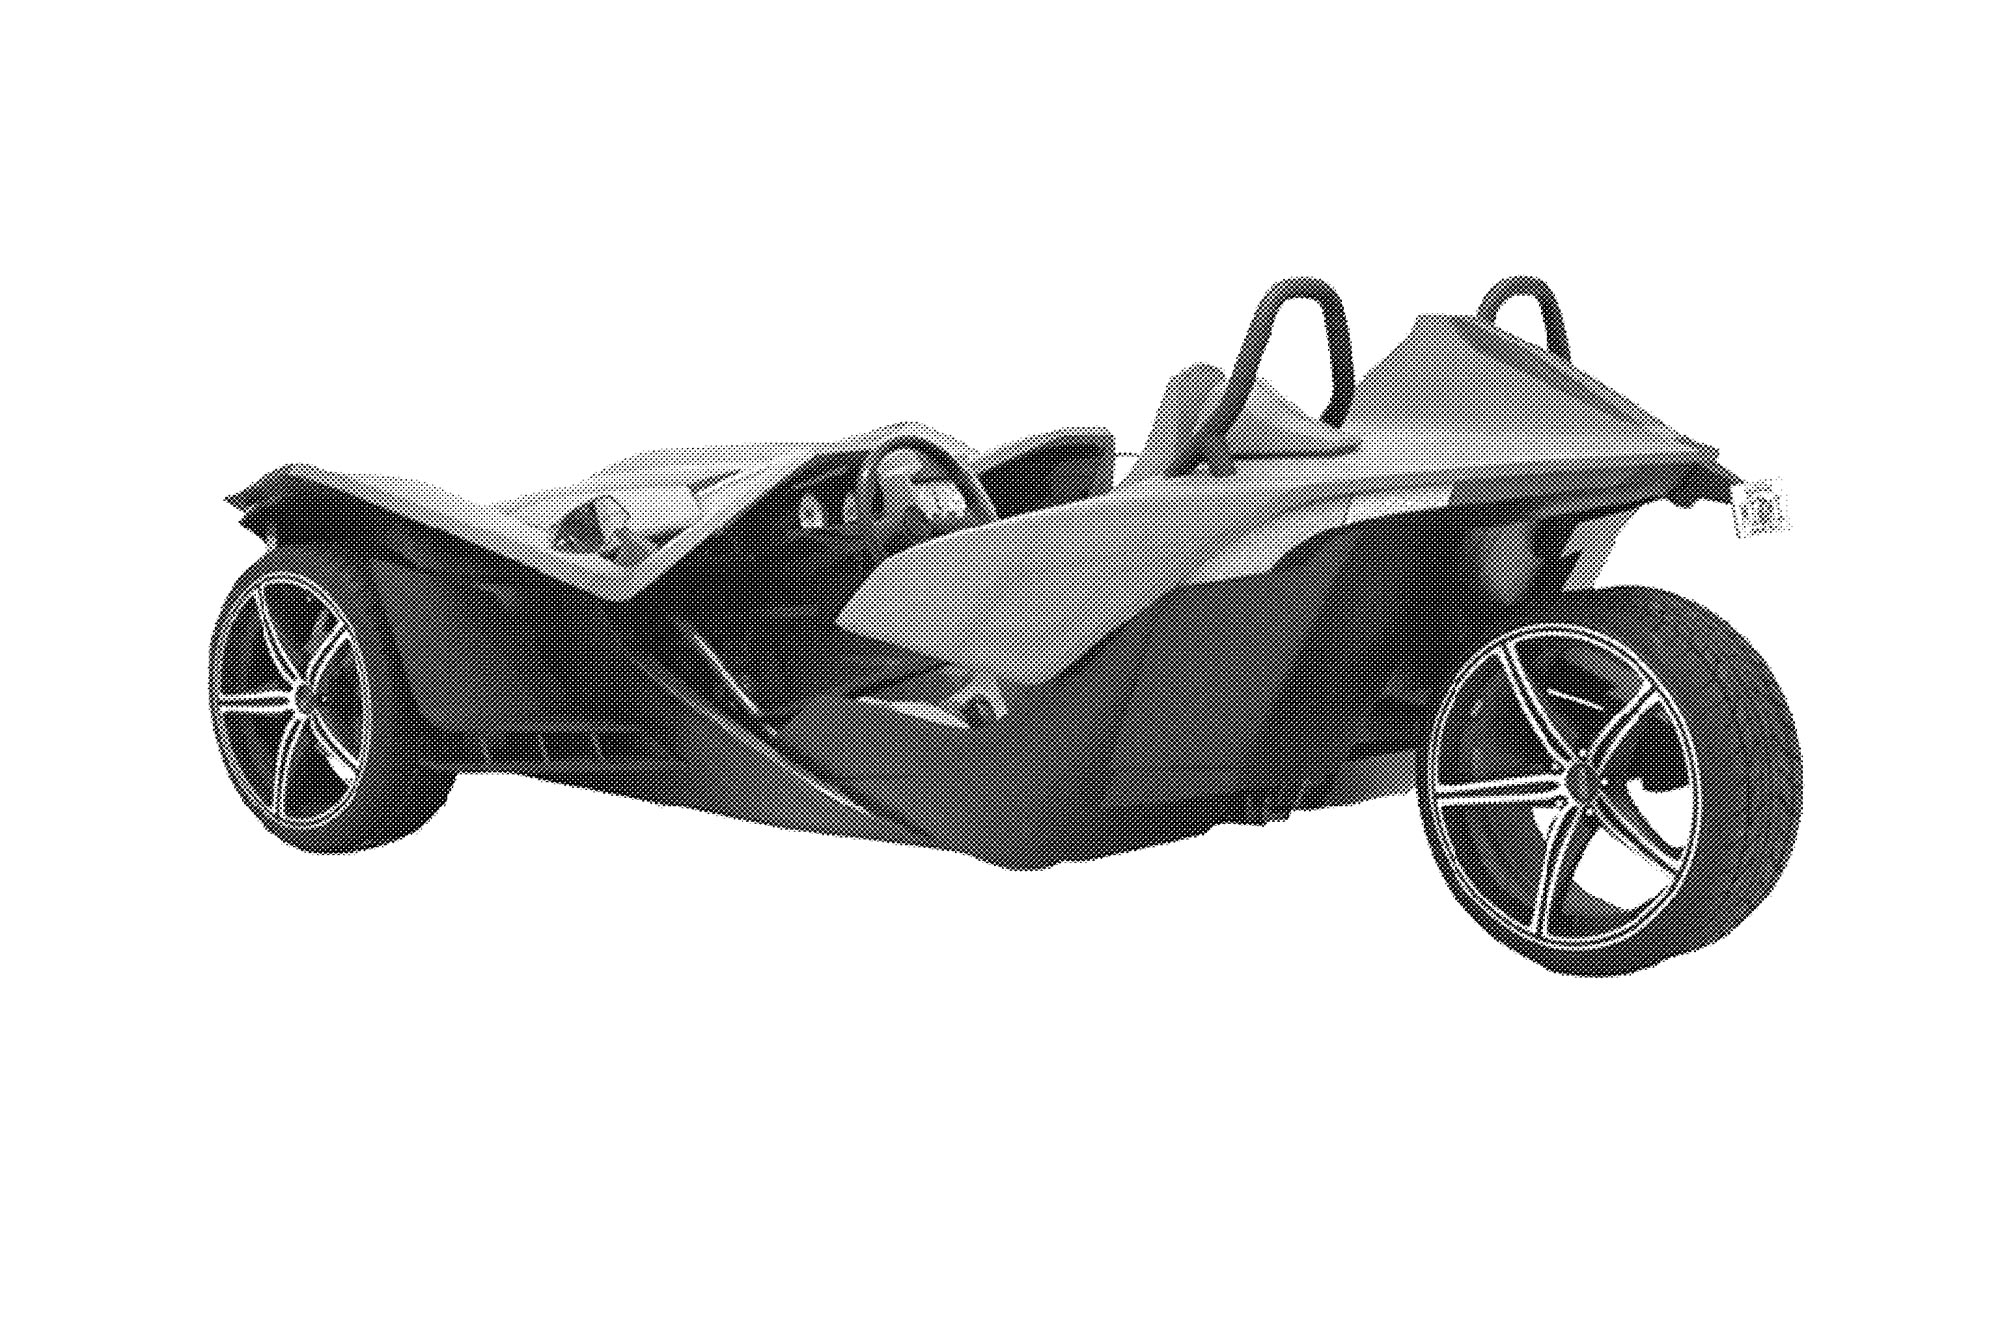 Polaris Slingshot - A Side-by-Side Trike That's Coming Soon